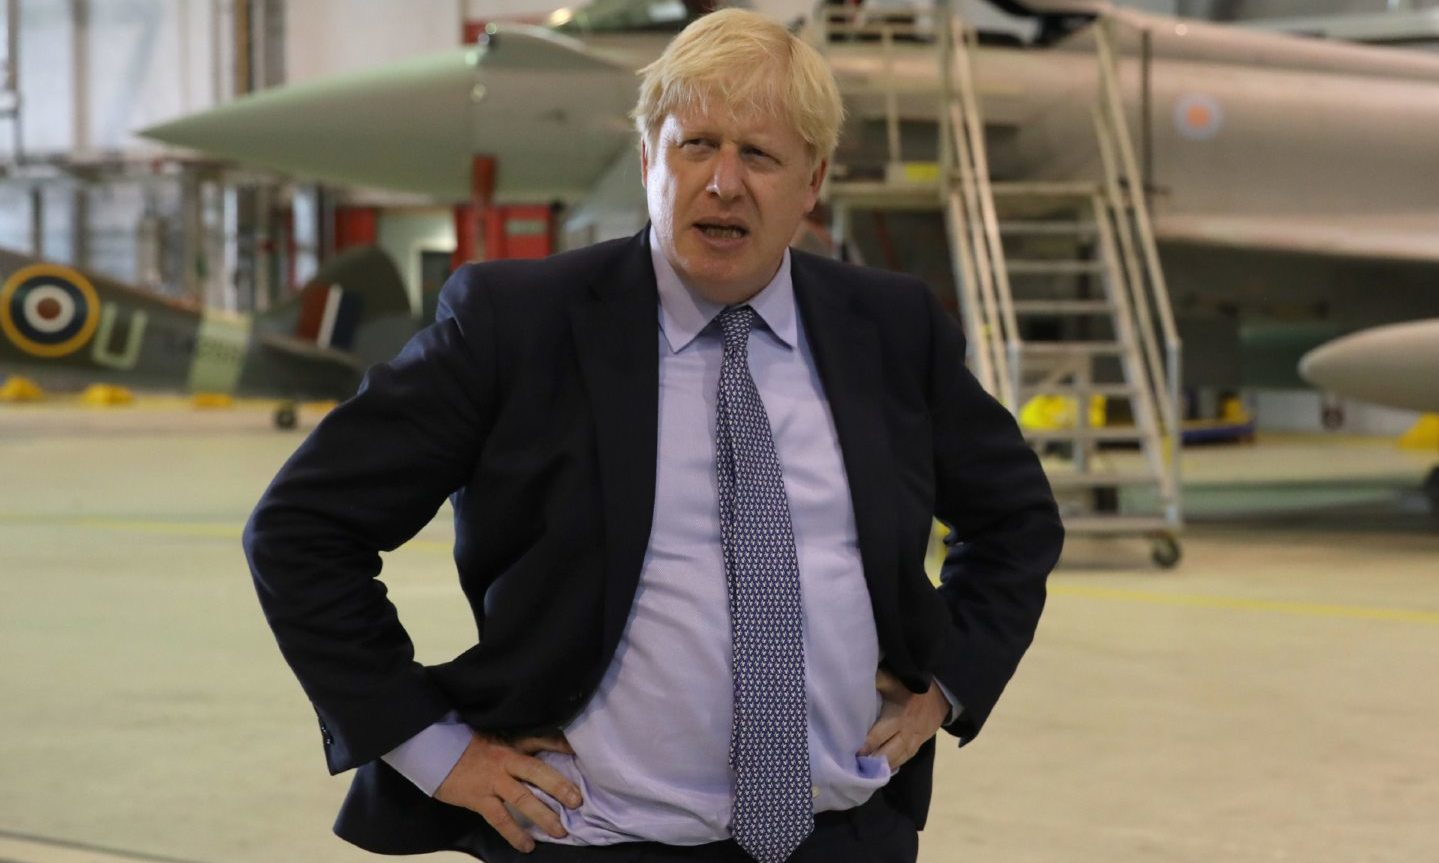 Prime Minister Boris Johnson is on holiday in Scotland.